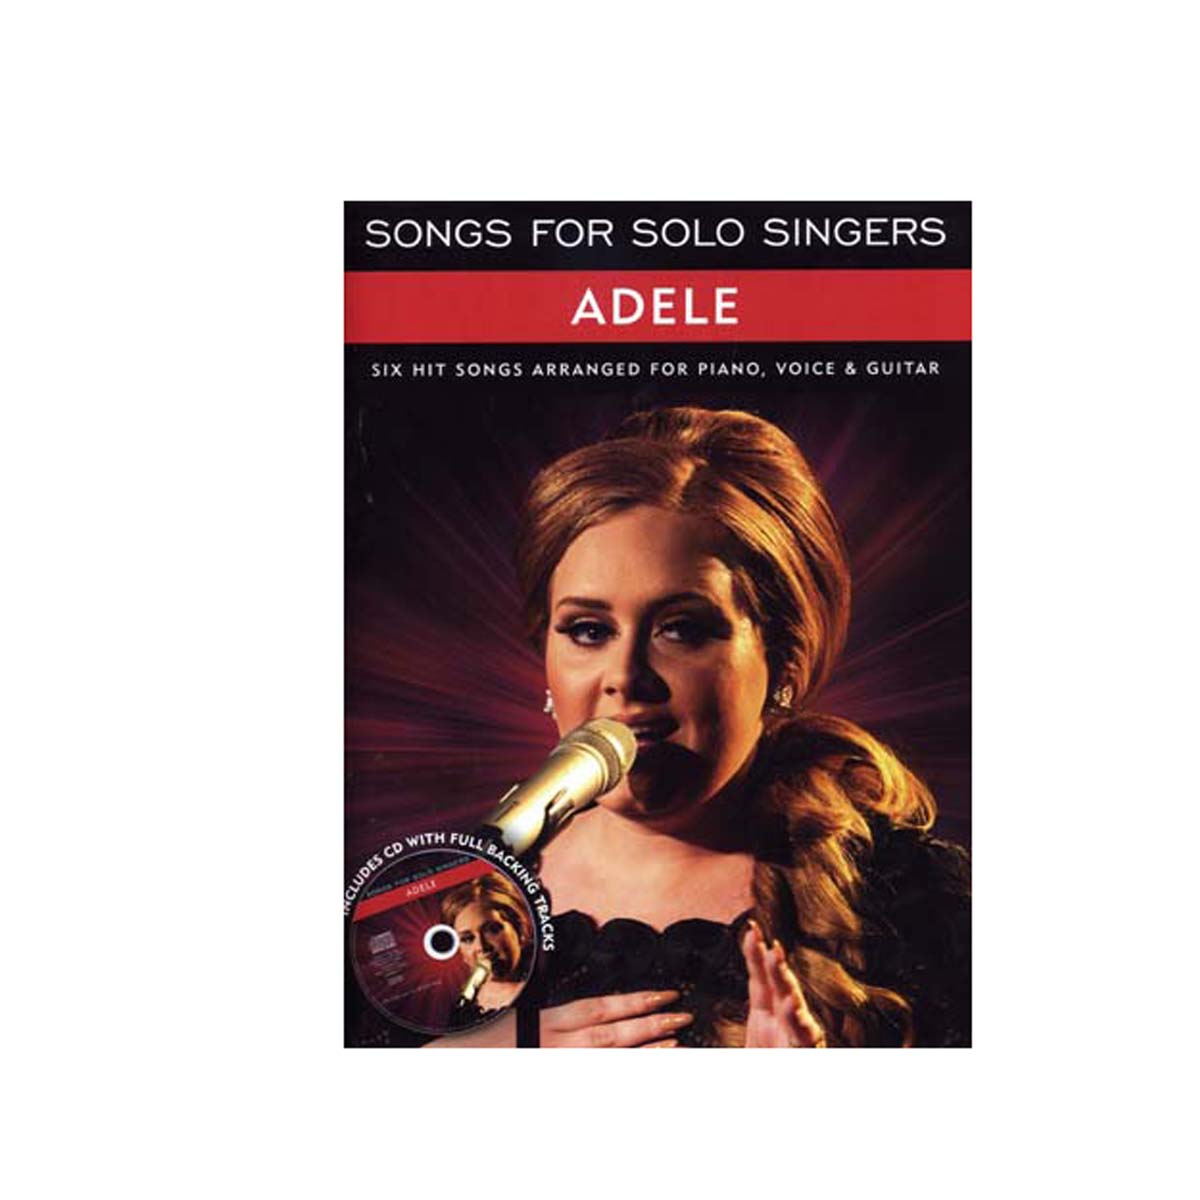 Adele Songs for solo singers